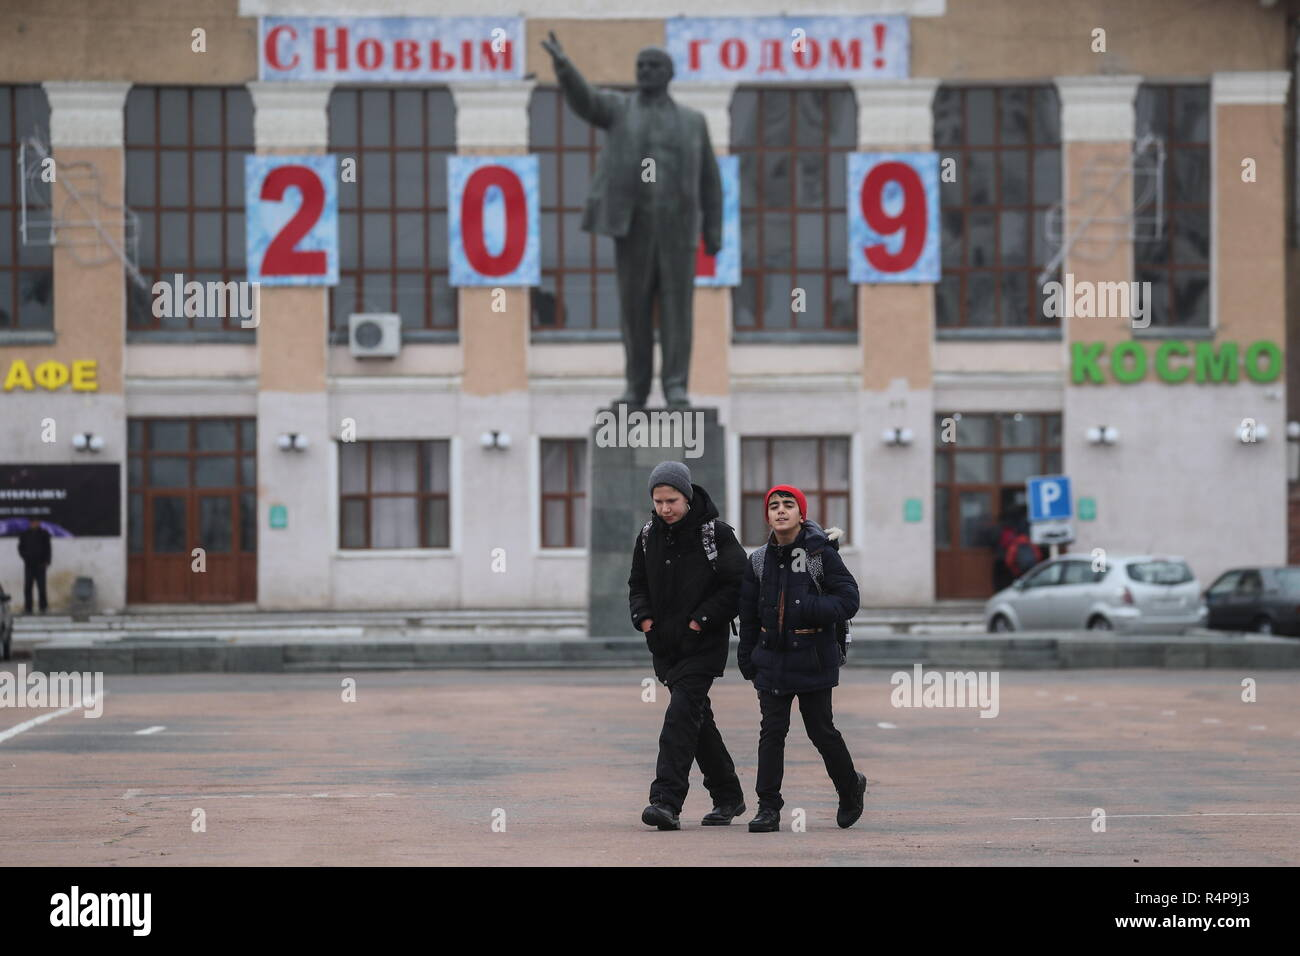 KAZAKHSTAN - NOVEMBER 28, 2018: Schoolboys in the city of Baikonur rented by Russia from Kazakhstan along with the Baikonur Cosmodrome. Sergei Savostyanov/TASS - Stock Image